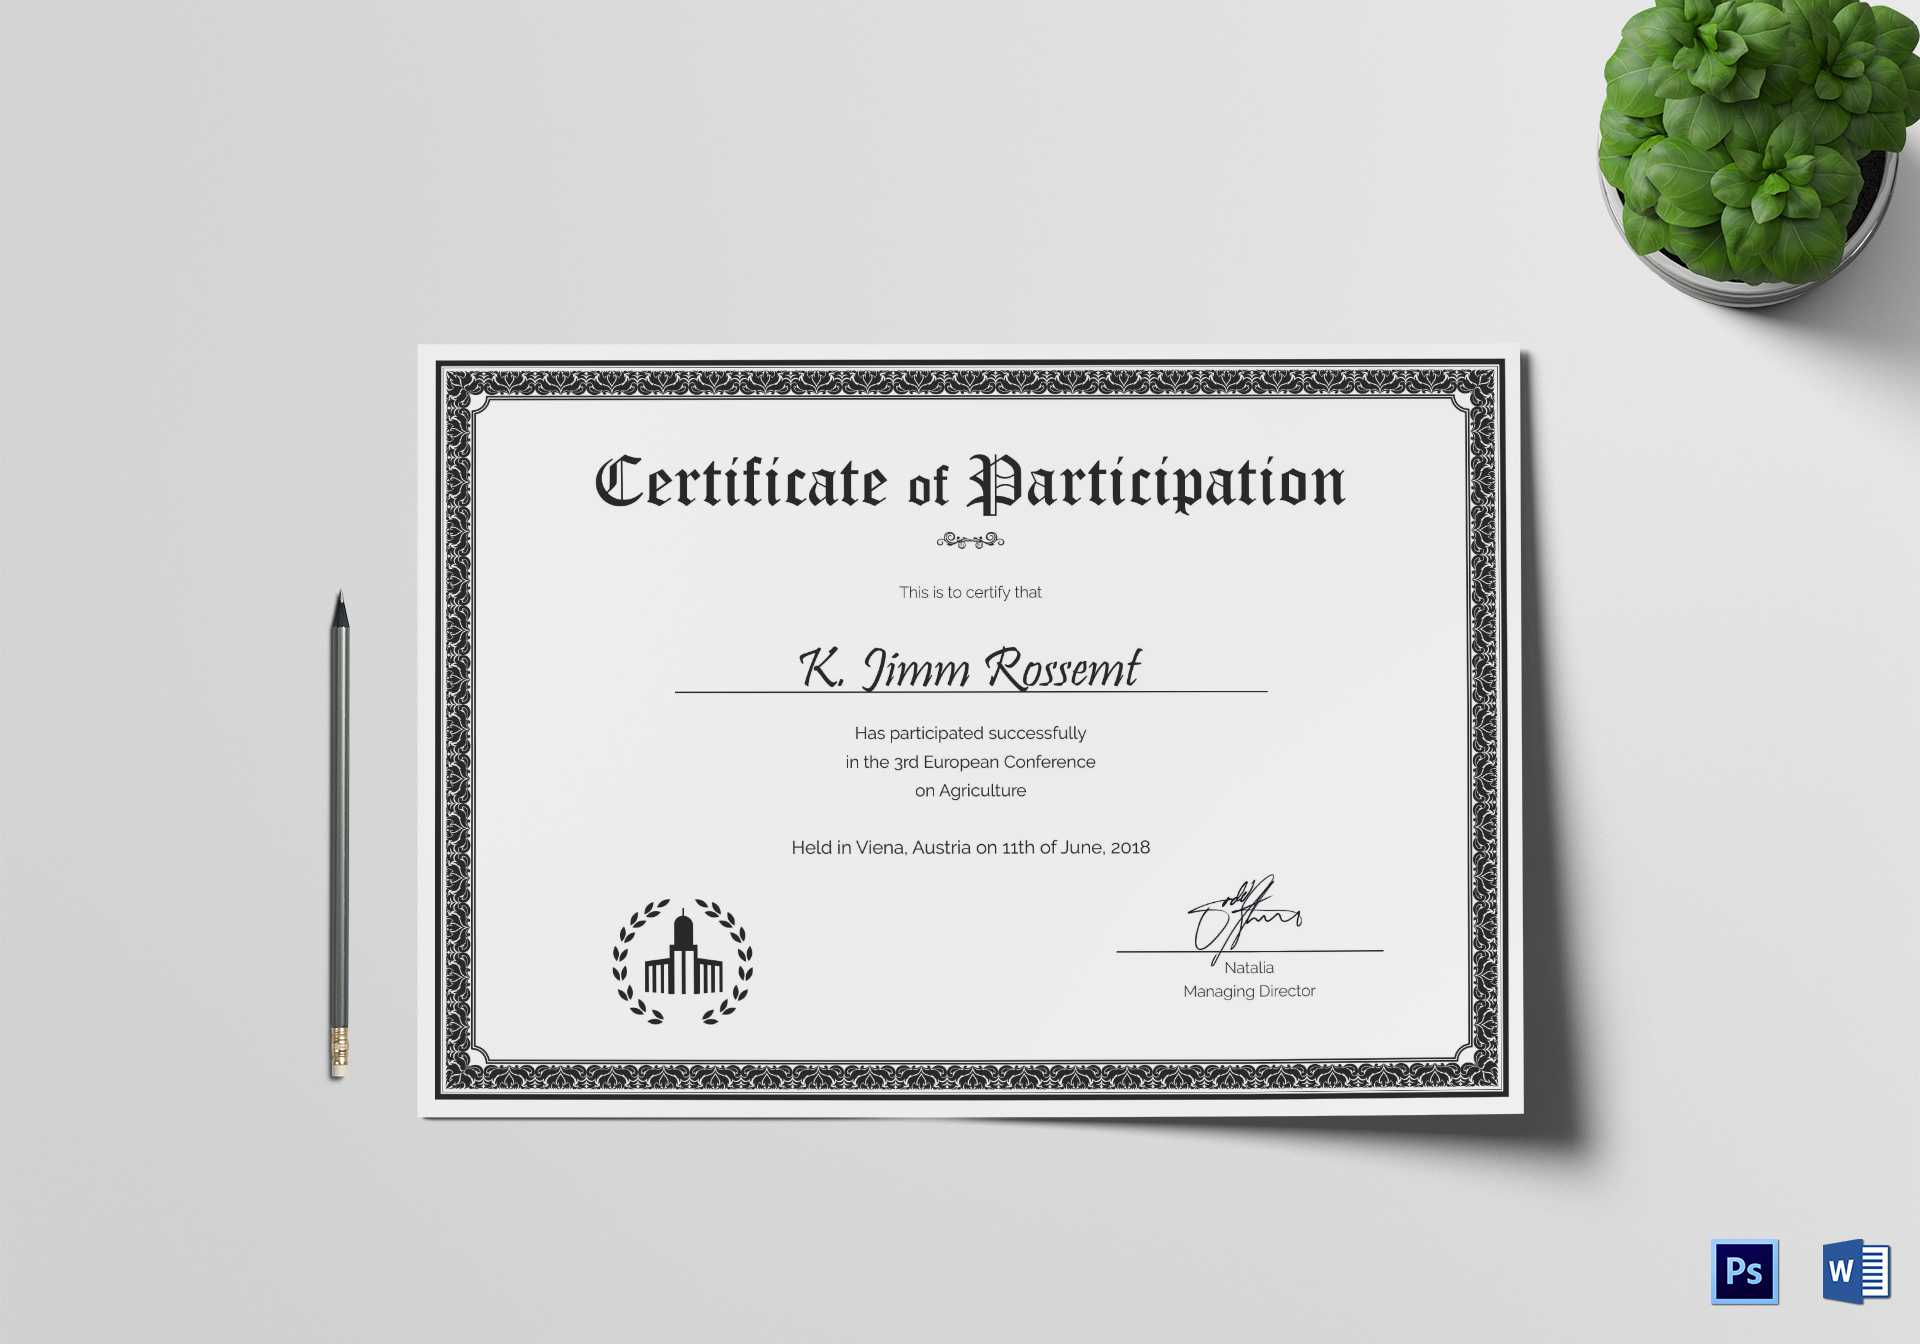 Conference Participation Certificate Template For Conference Participation Certificate Template